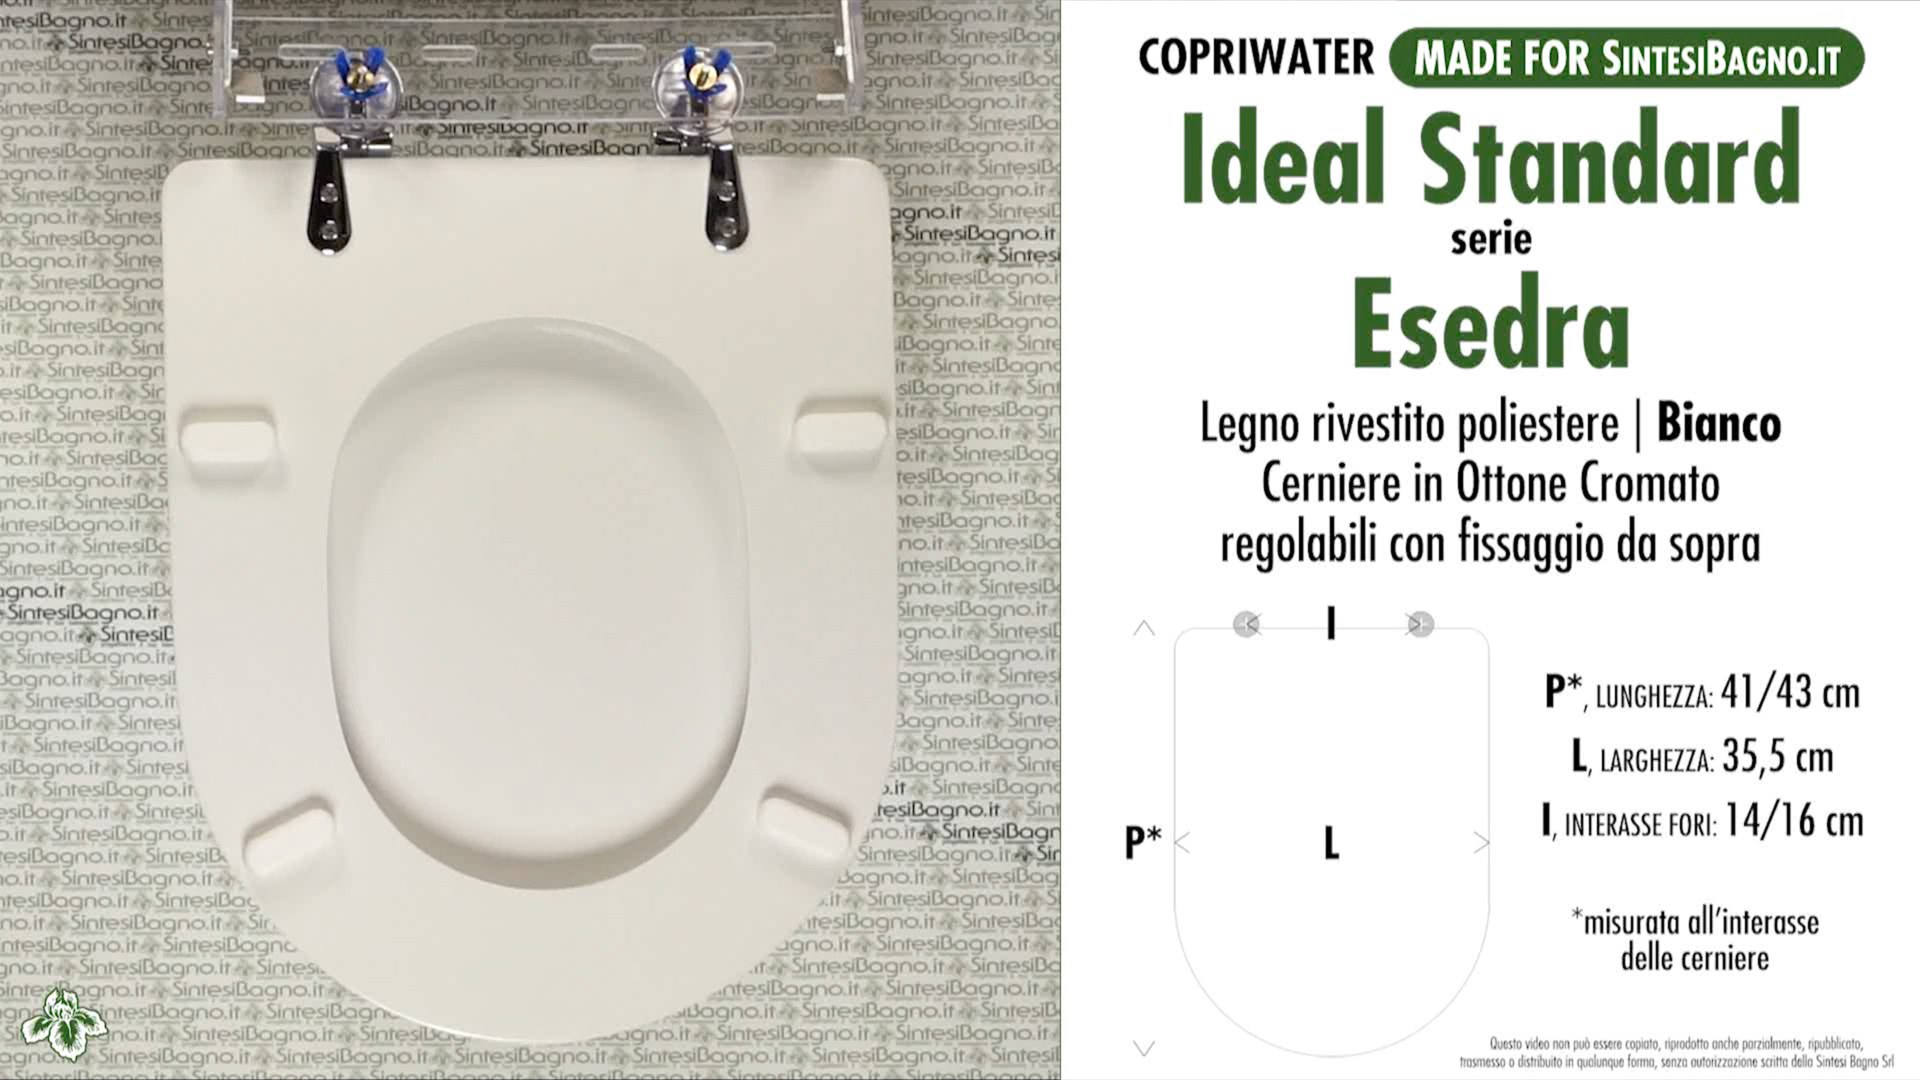 Copriwater per wc esedra ideal standard ricambio for Copriwater ideal